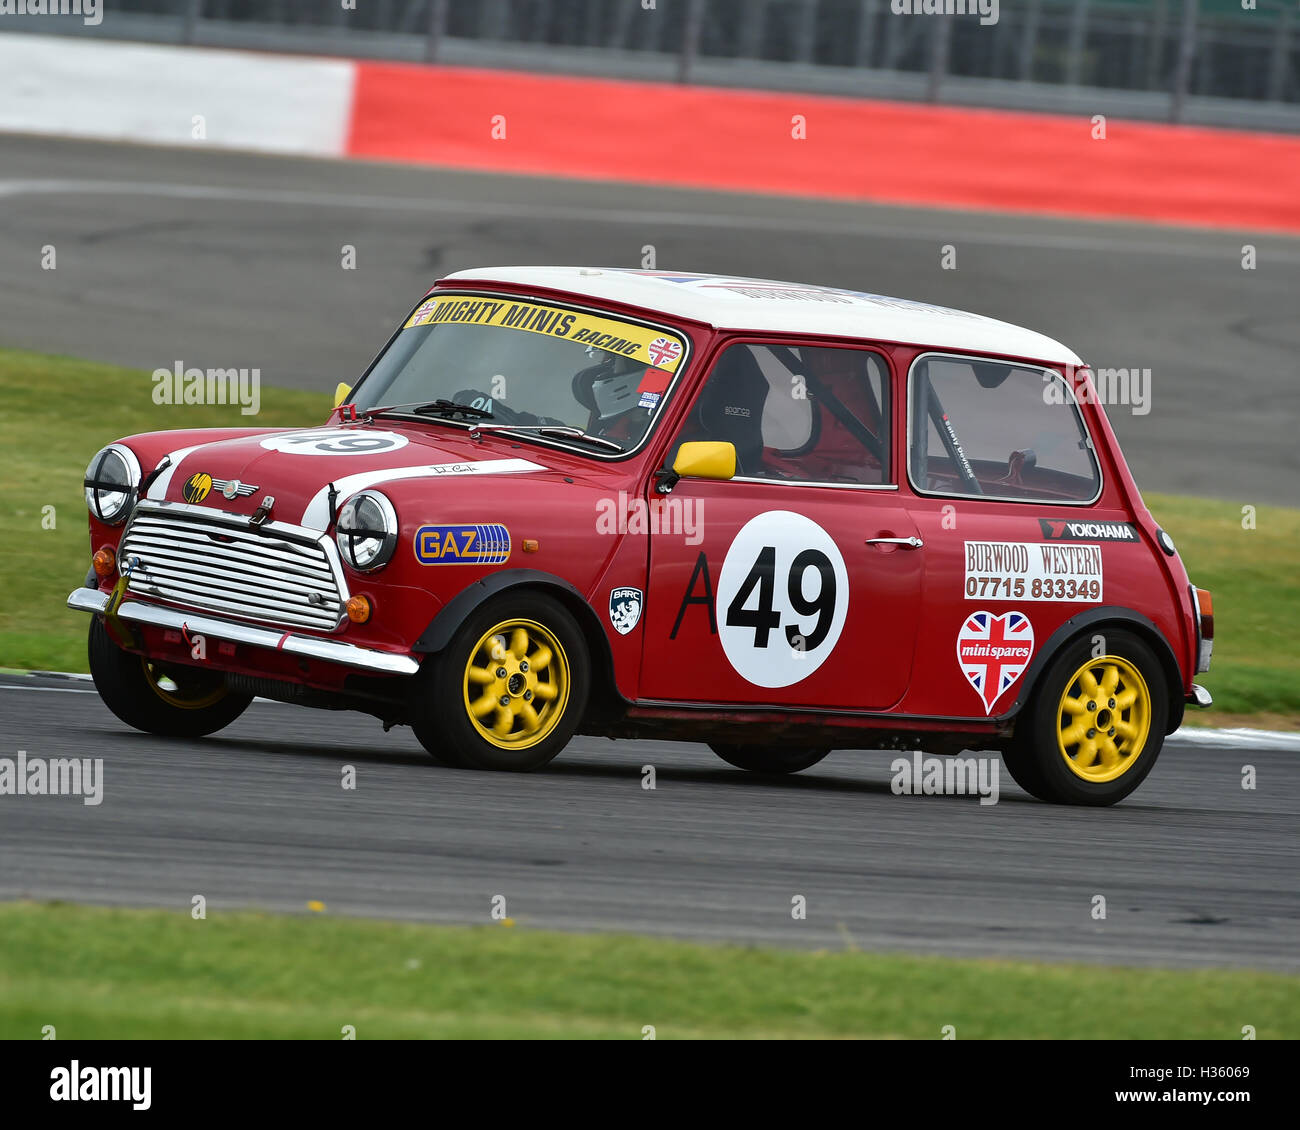 Peter Vemply-Burwood, Mighty Mini, 1275, Mighty Mini Championship, Saturday, Silverstone, Silverstone truck festival, - Stock Image